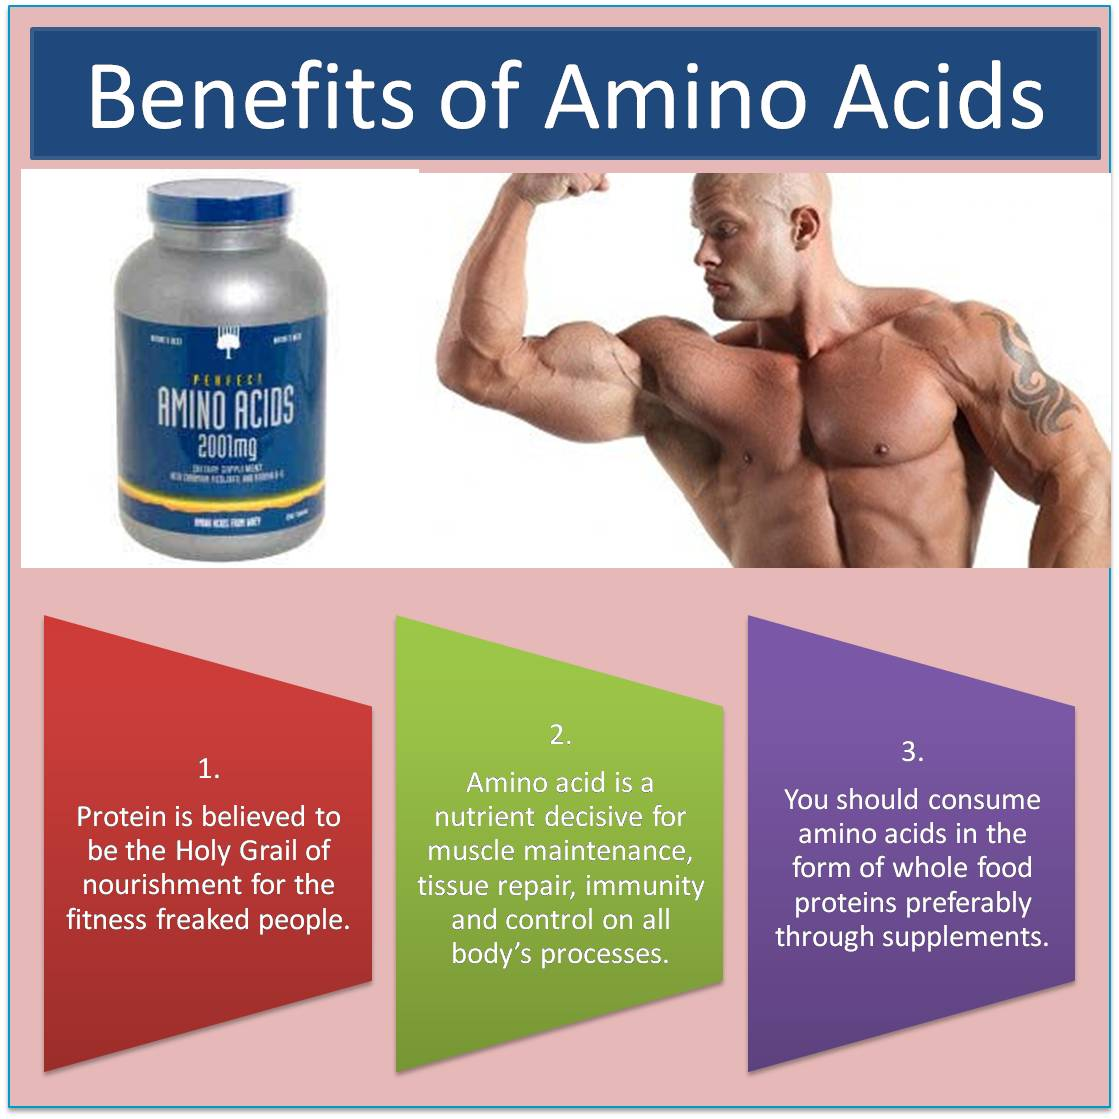 Benefits of Amino Acids